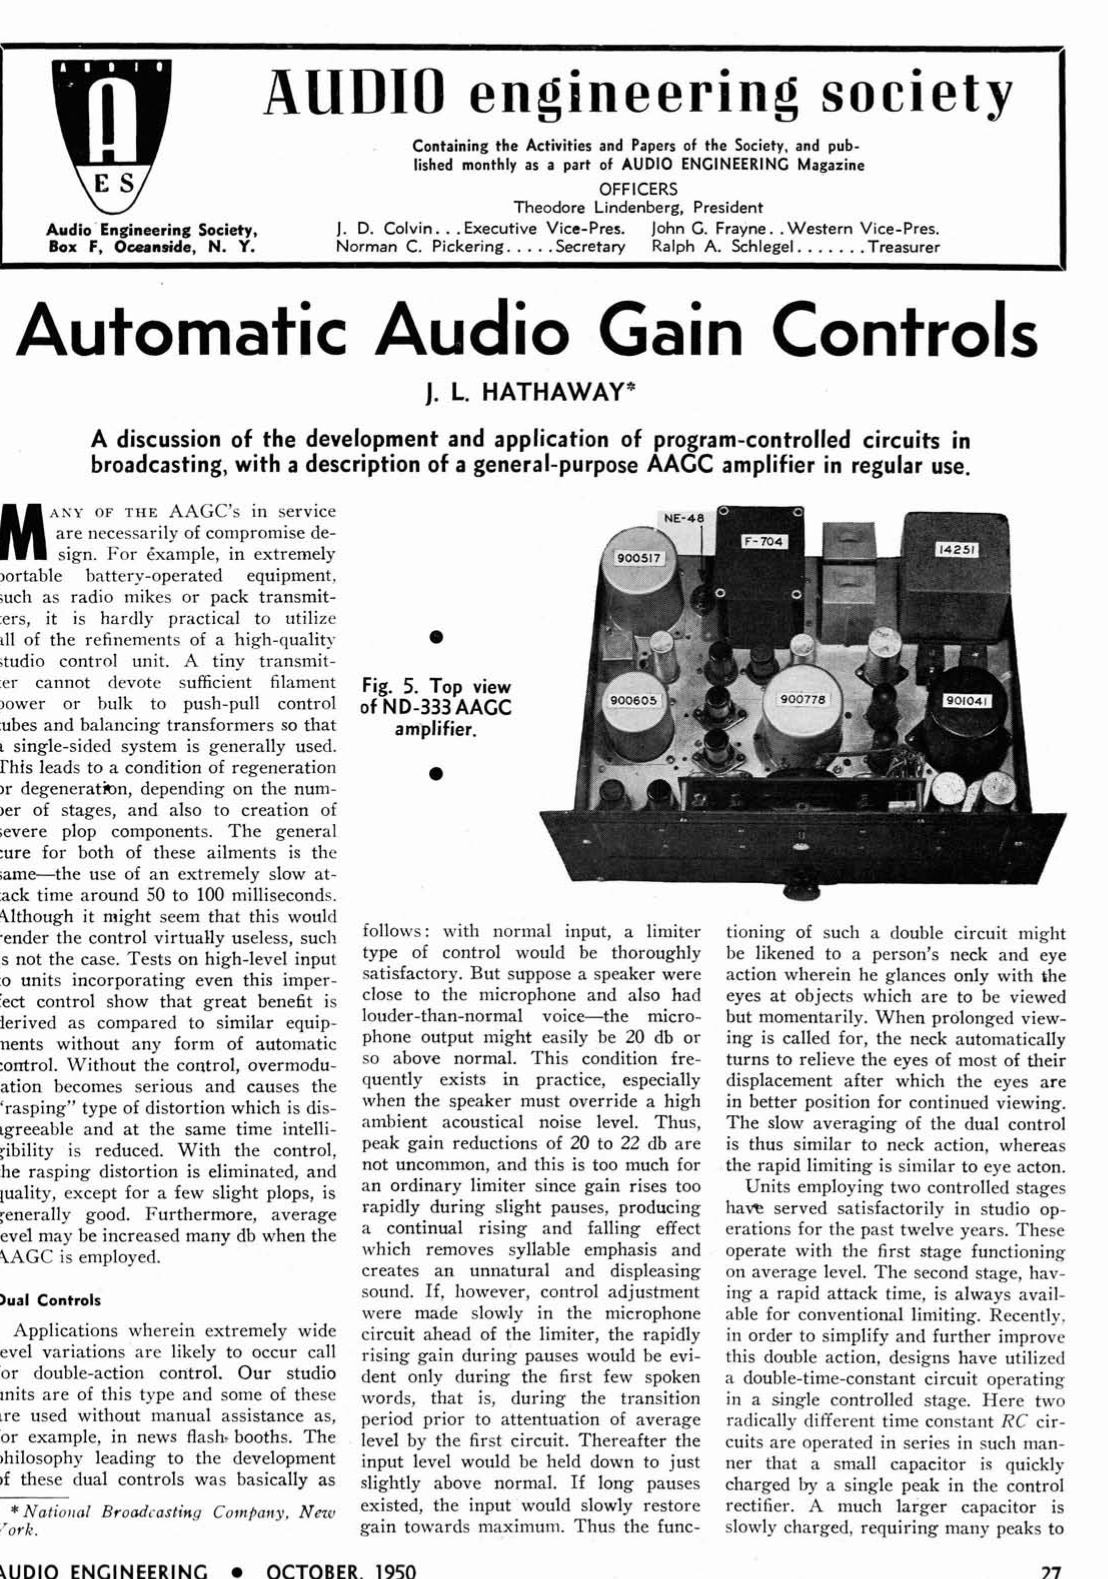 AES E-Library » Automatic Audio Gain Controls, Part 2